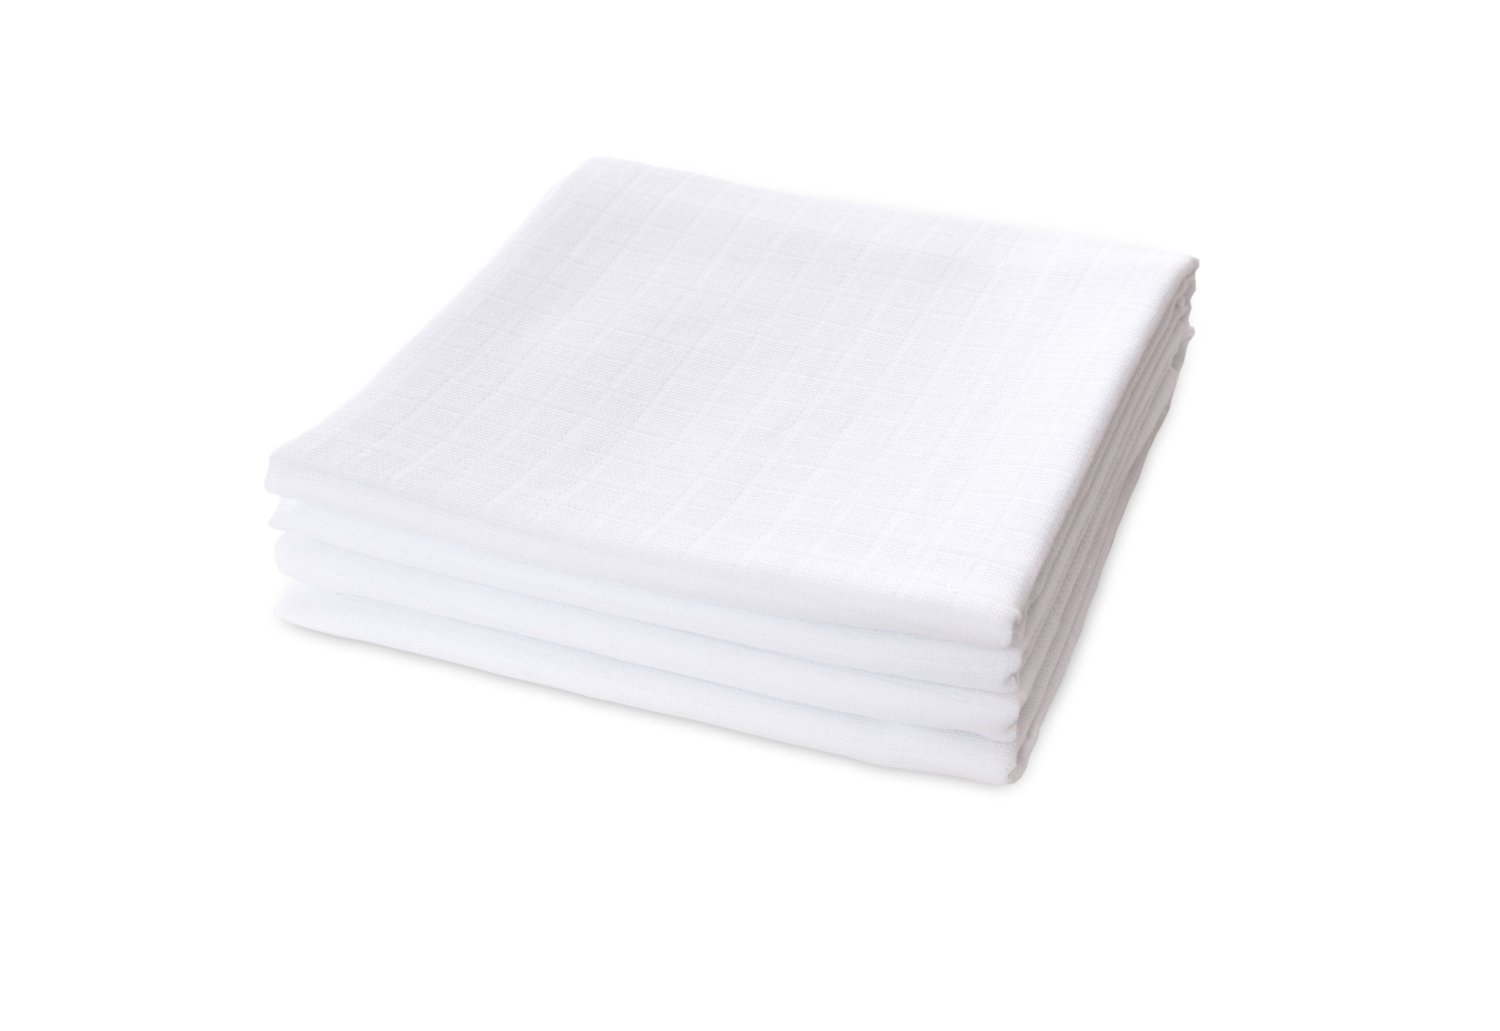 Muslins Squares White Washable up to 95/°C 60 x 80 cm Pack of 10 100/% Cotton by TARGARIAN